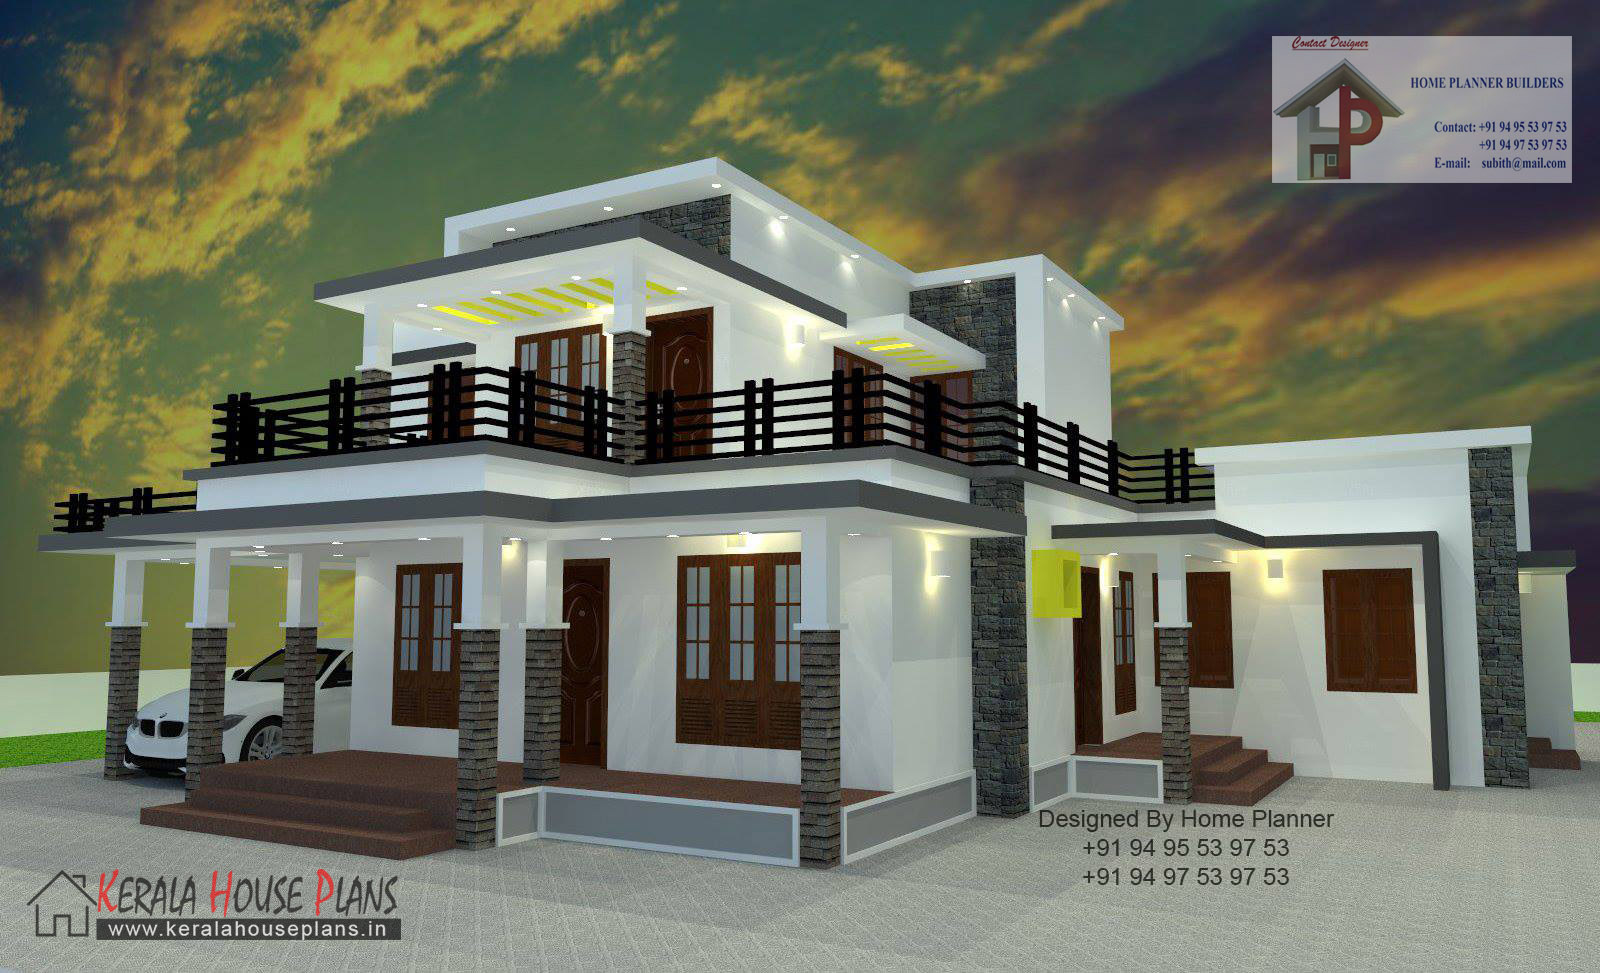 2000 sqft box type house kerala house plans designs for Home design 4u kerala